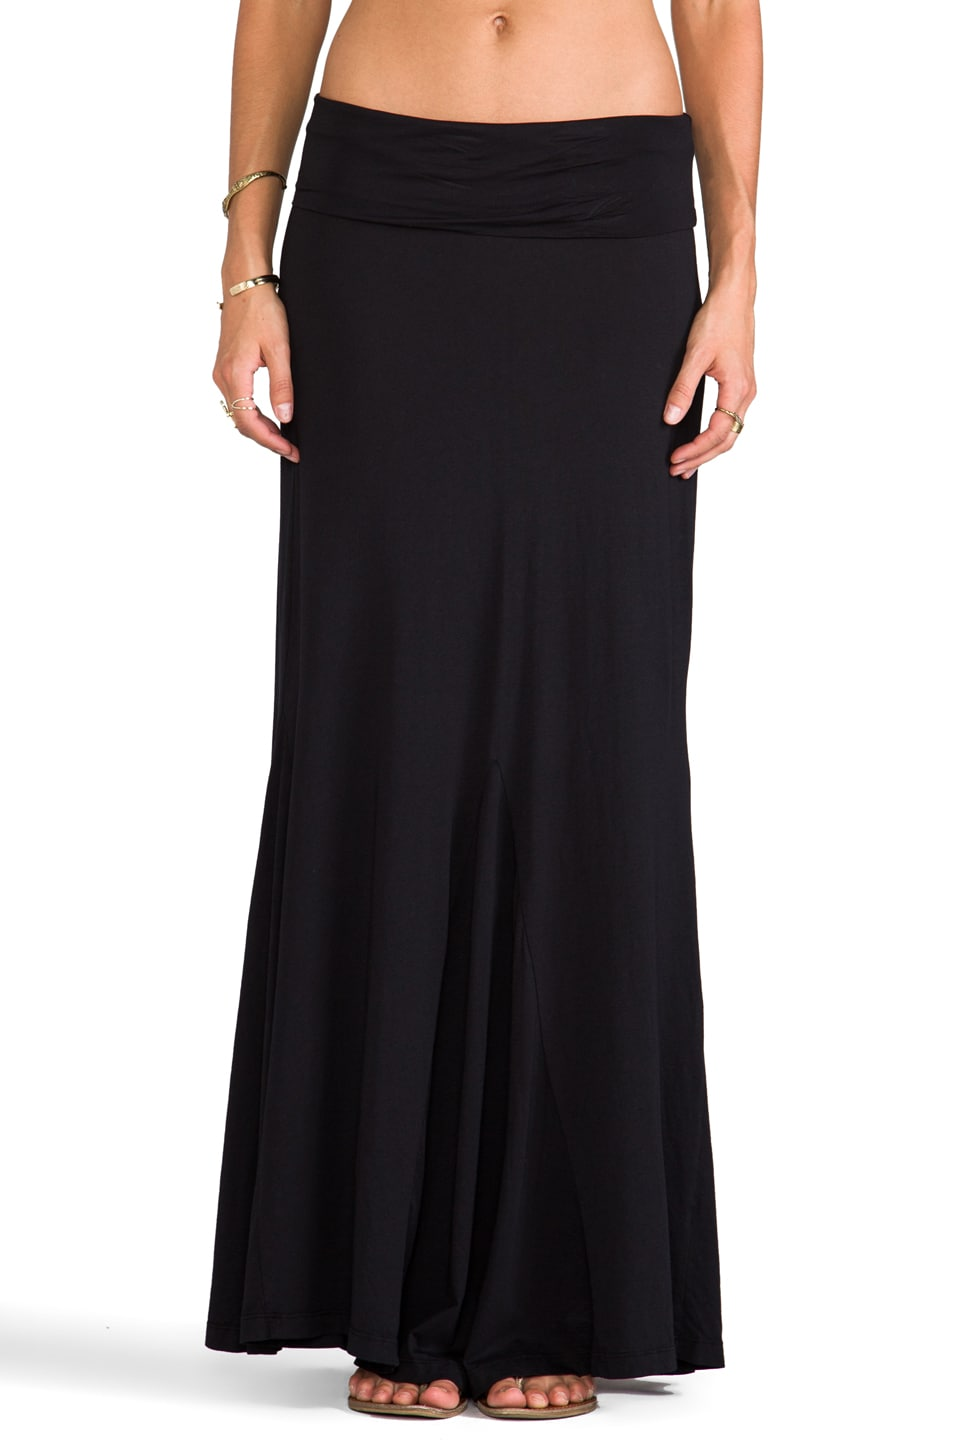 Bobi Maxi Skirt in Black